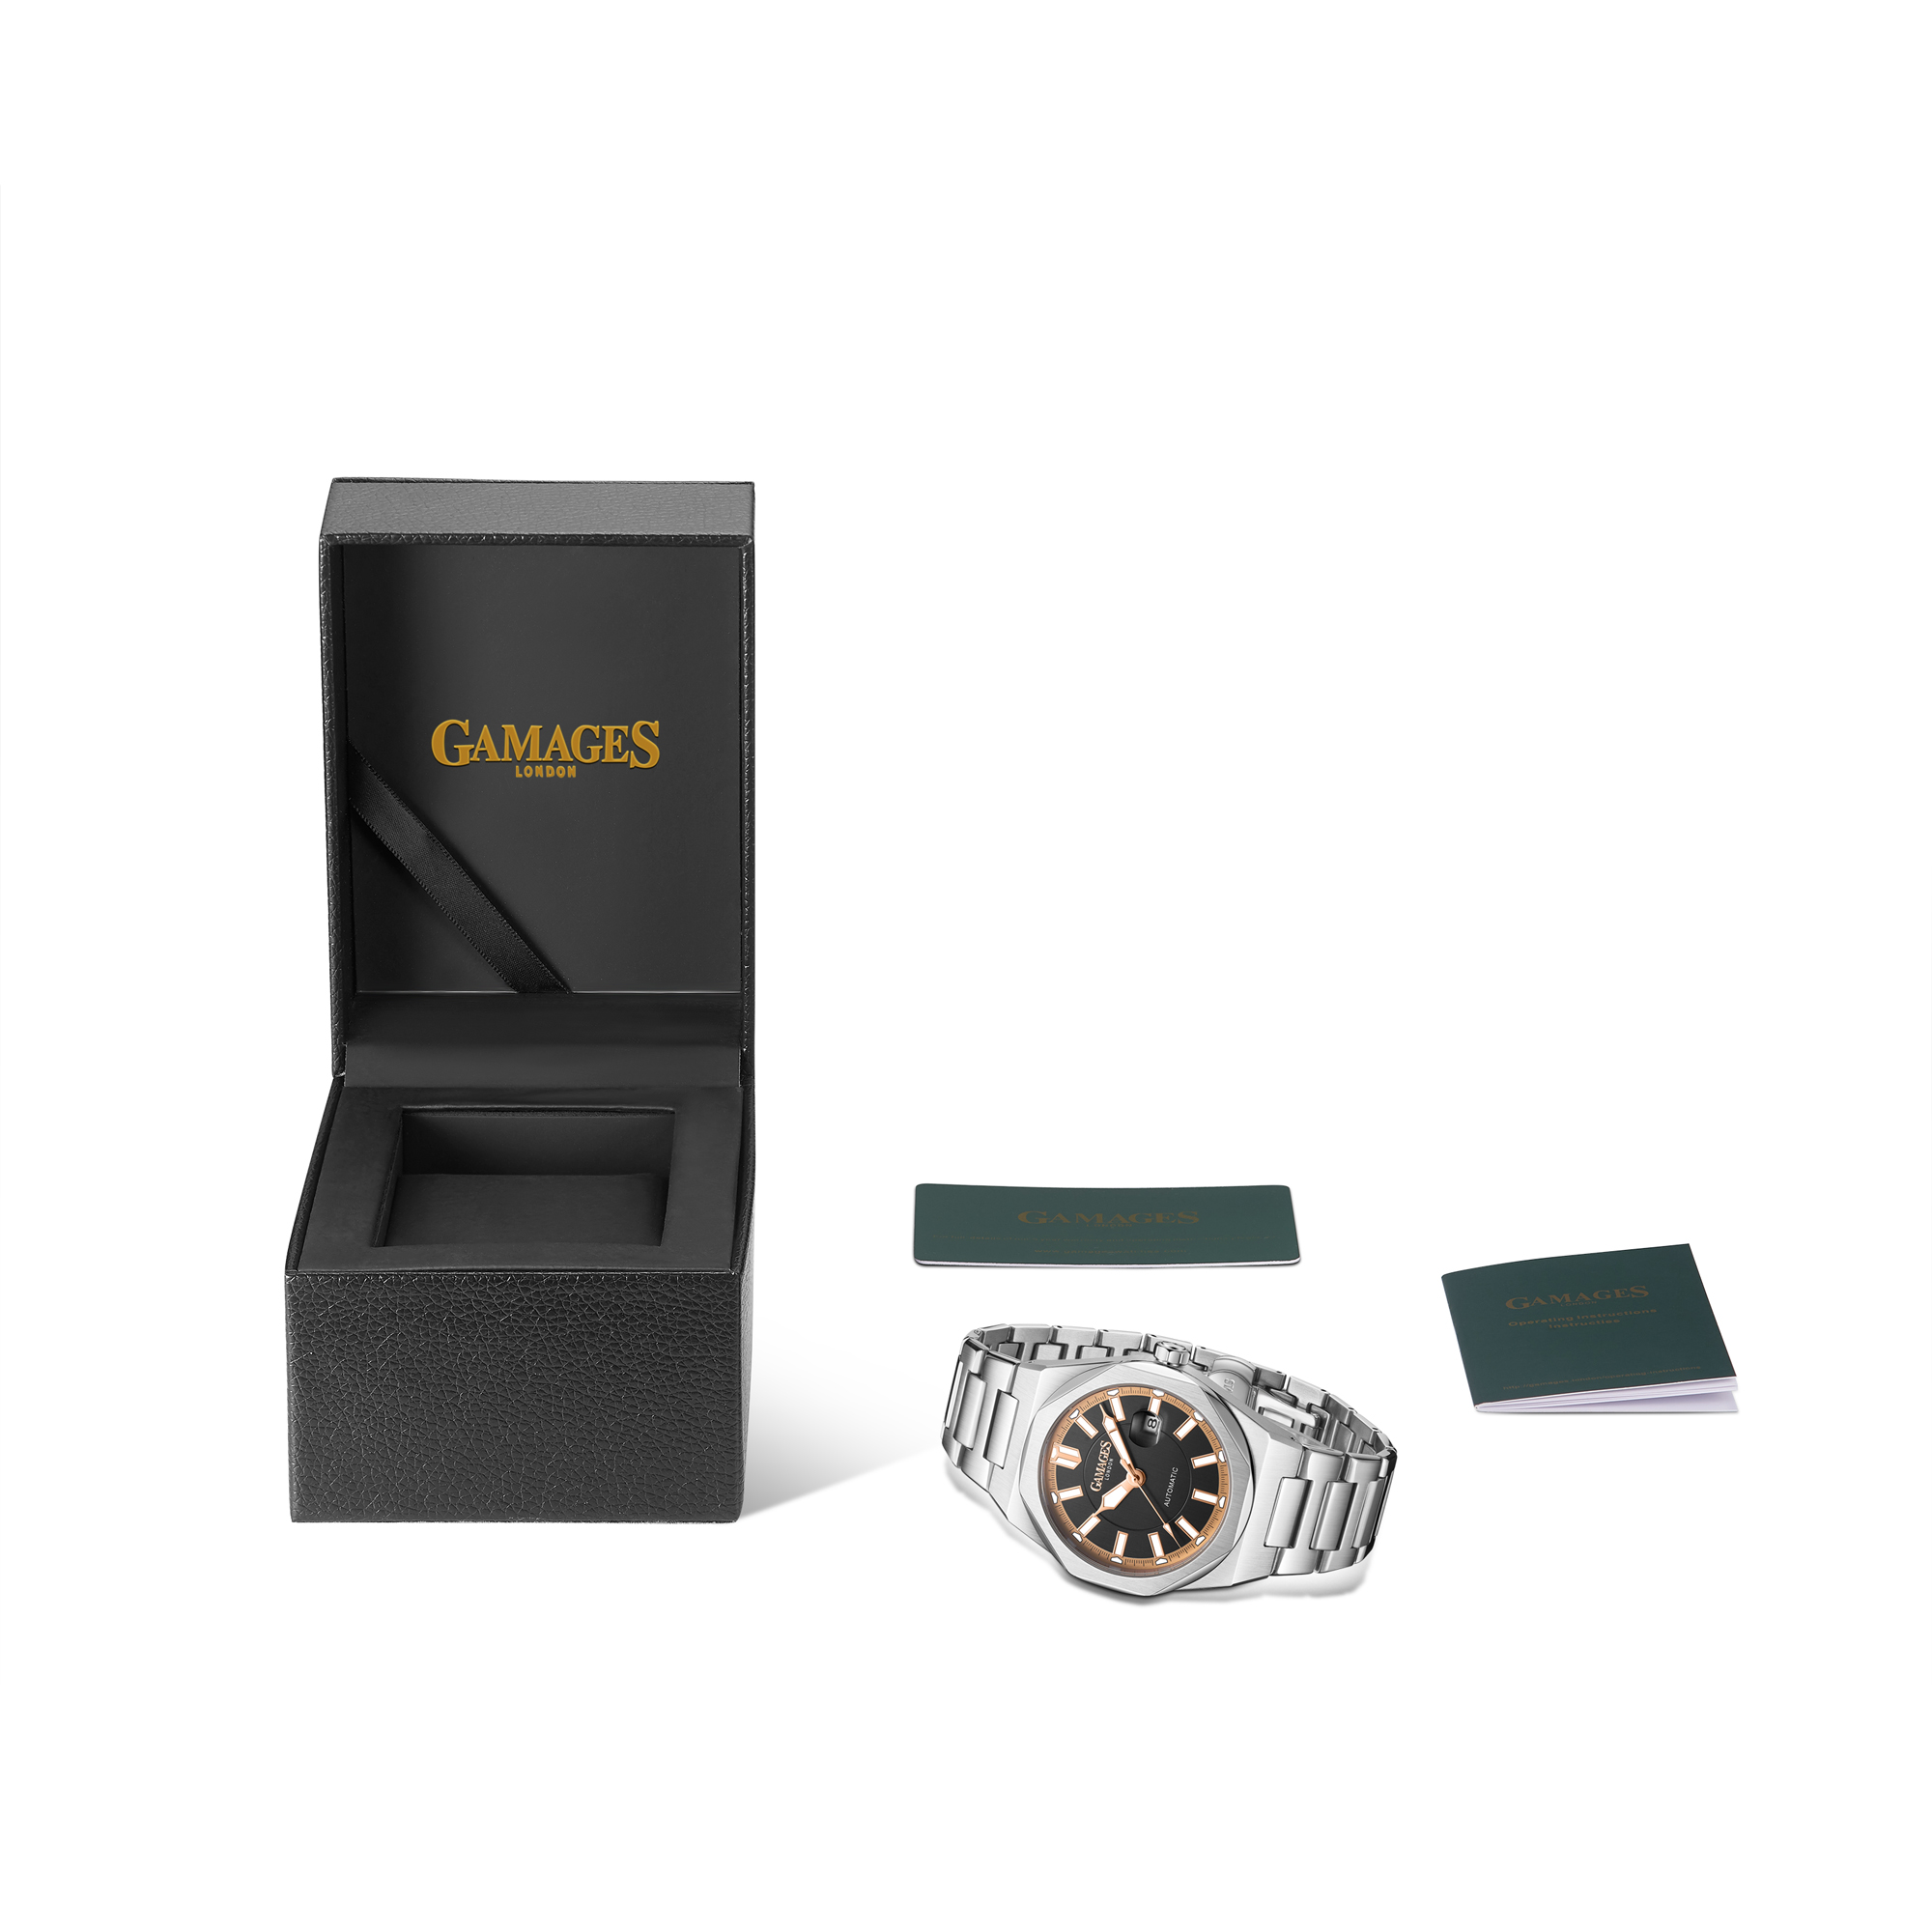 Ltd Edition Hand Assembled GAMAGES Quintessential Automatic Black – 5 Year Warranty & Free Delivery - Image 2 of 5